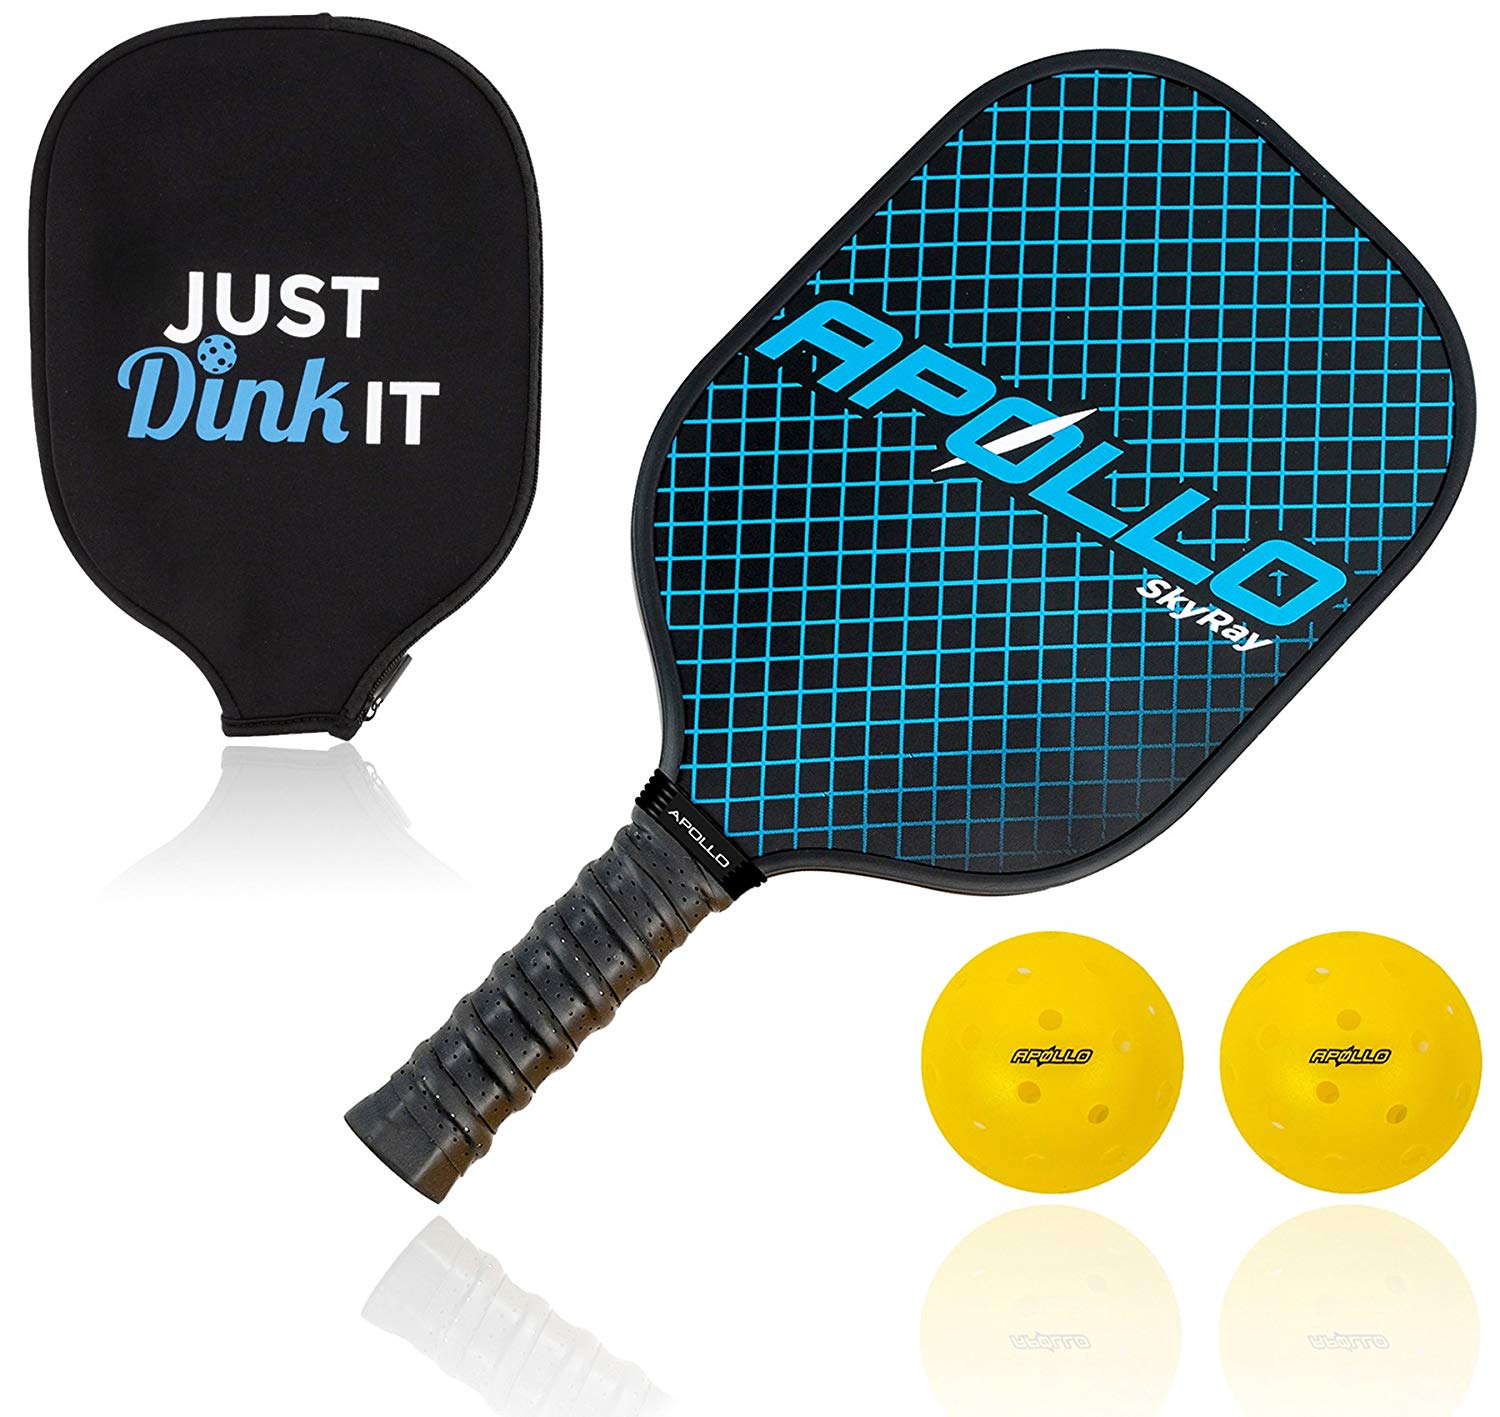 Top 10 Best Pickle ball Paddles in 2019 Reviews